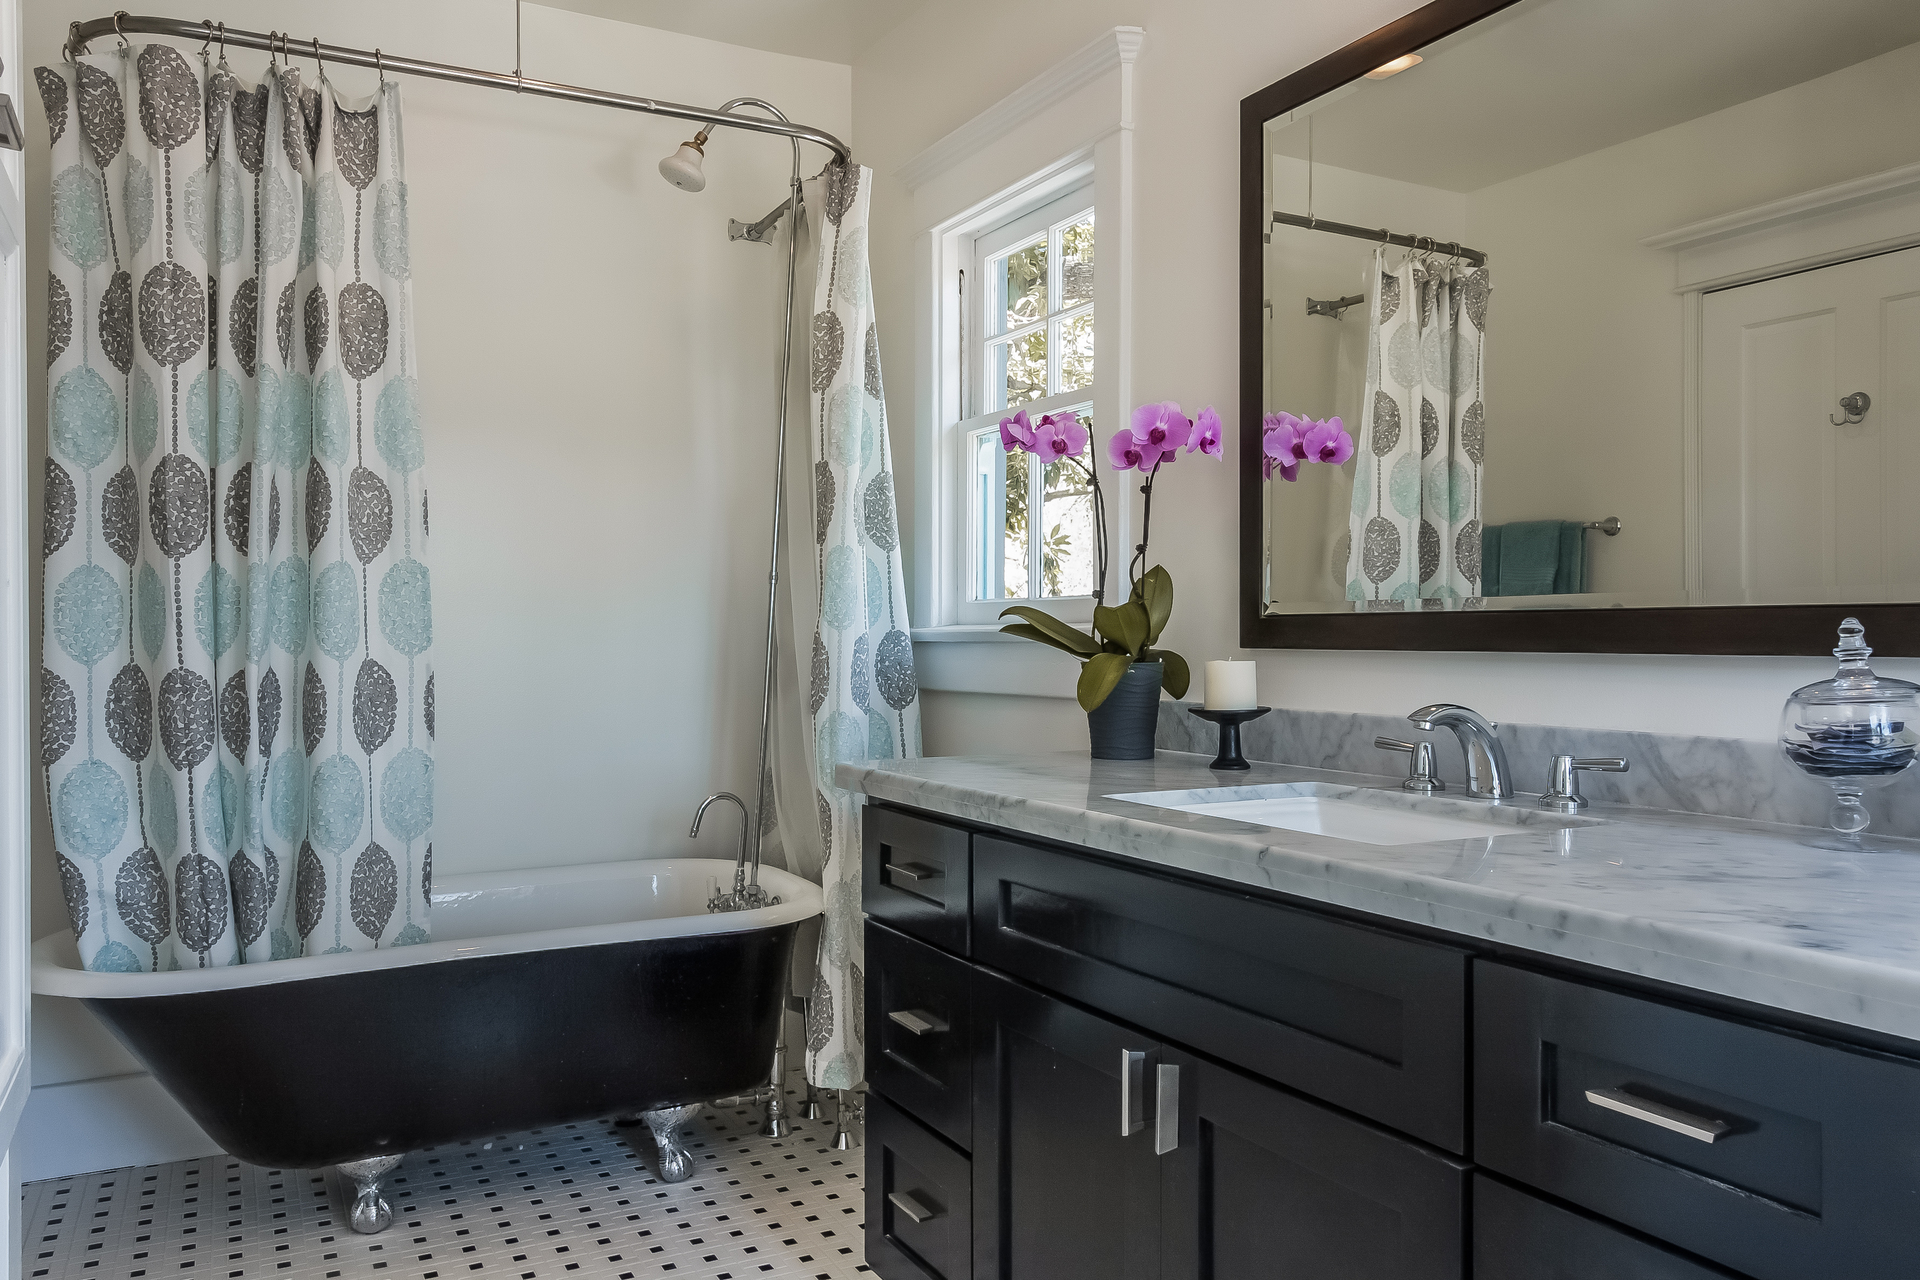 027-Master_Bathroom-1926909-medium.jpg